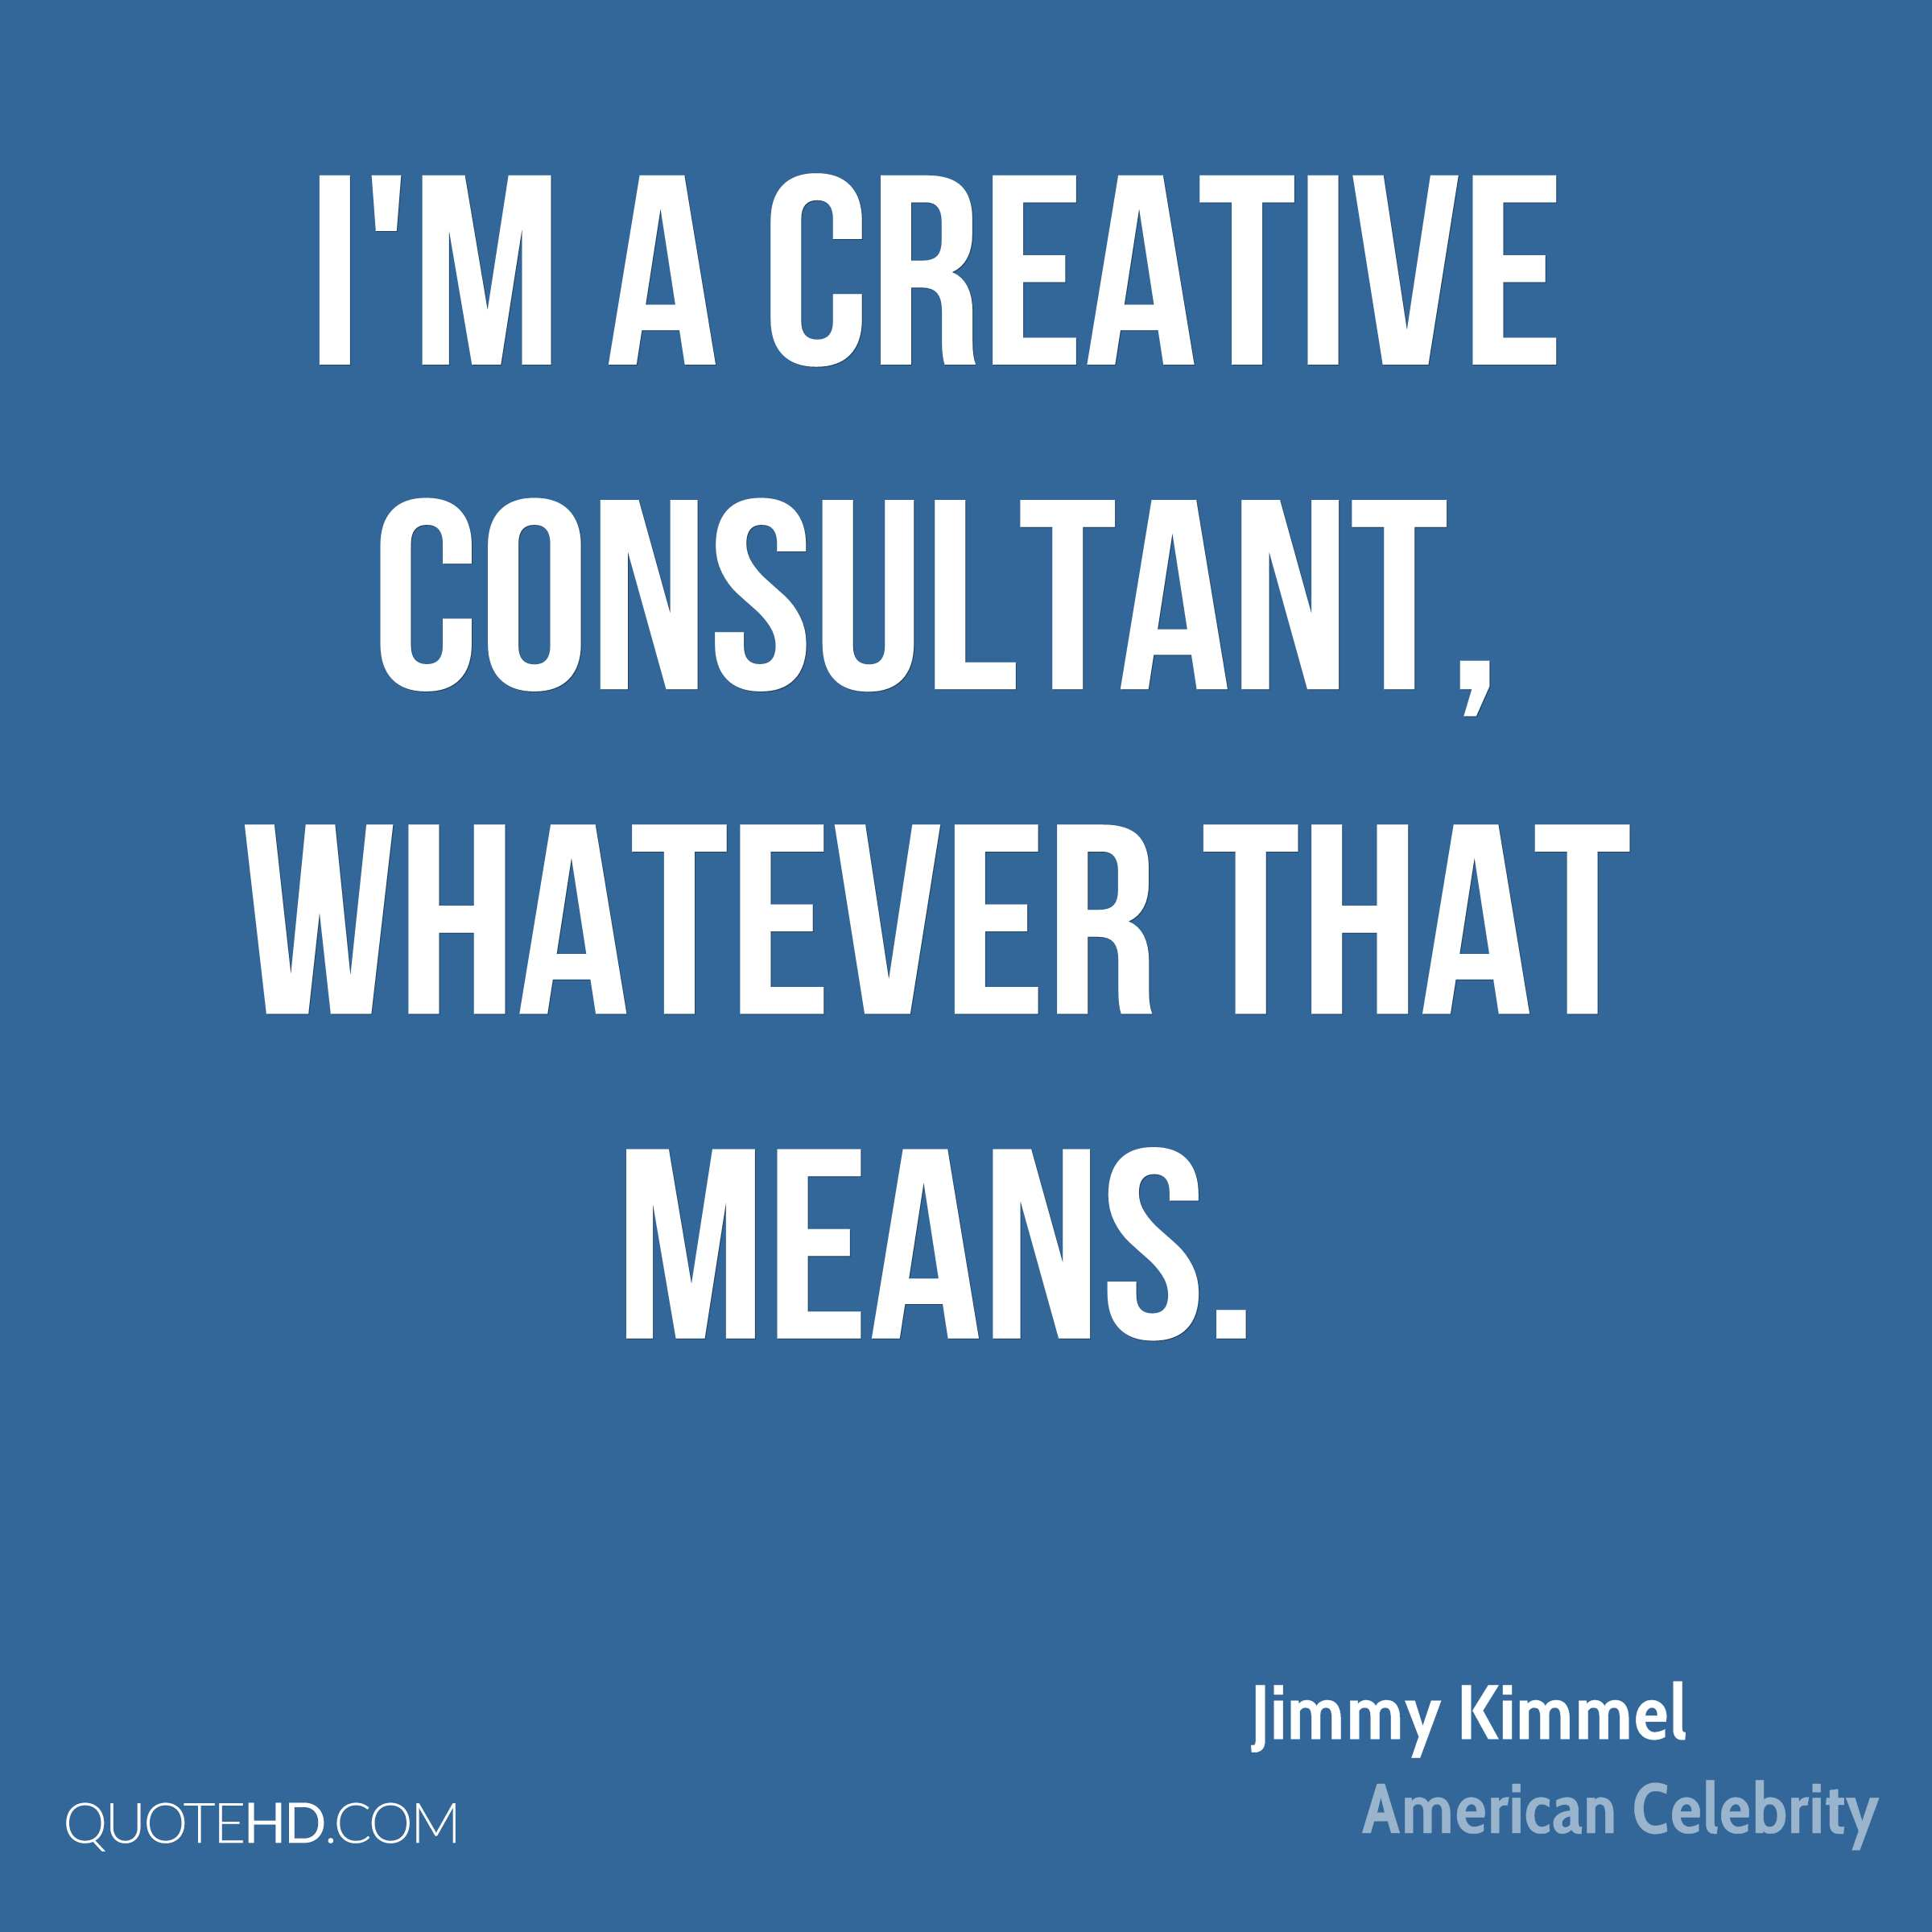 I'm a creative consultant, whatever that means.